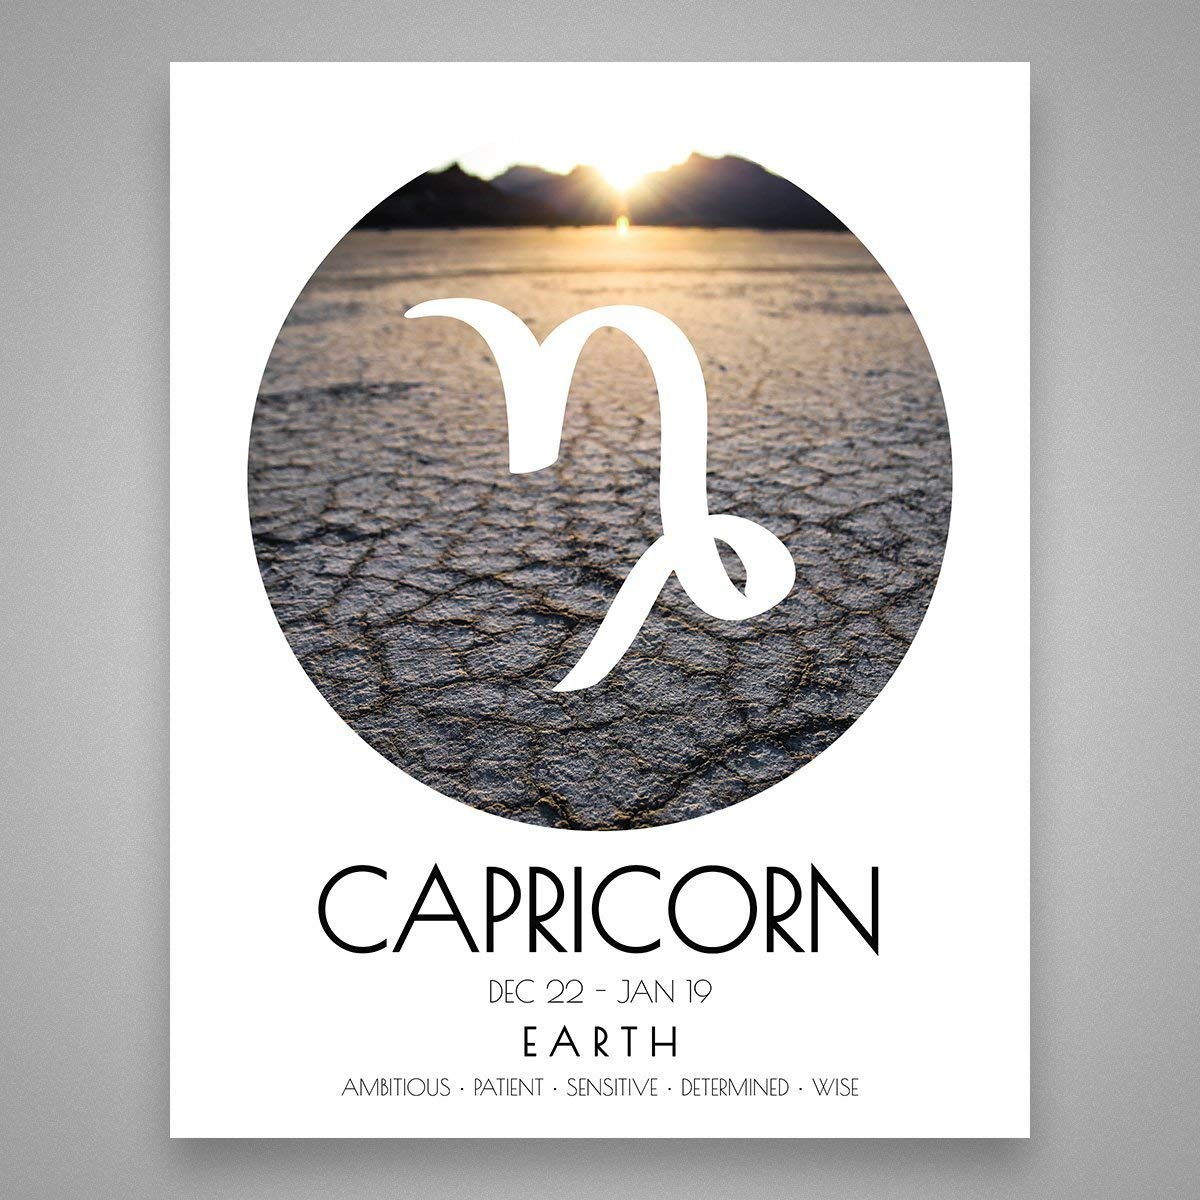 Capricorn Wall Art - Earth Star Sign Print - Zodiac Gift - Capricorn Gift - Capricorn